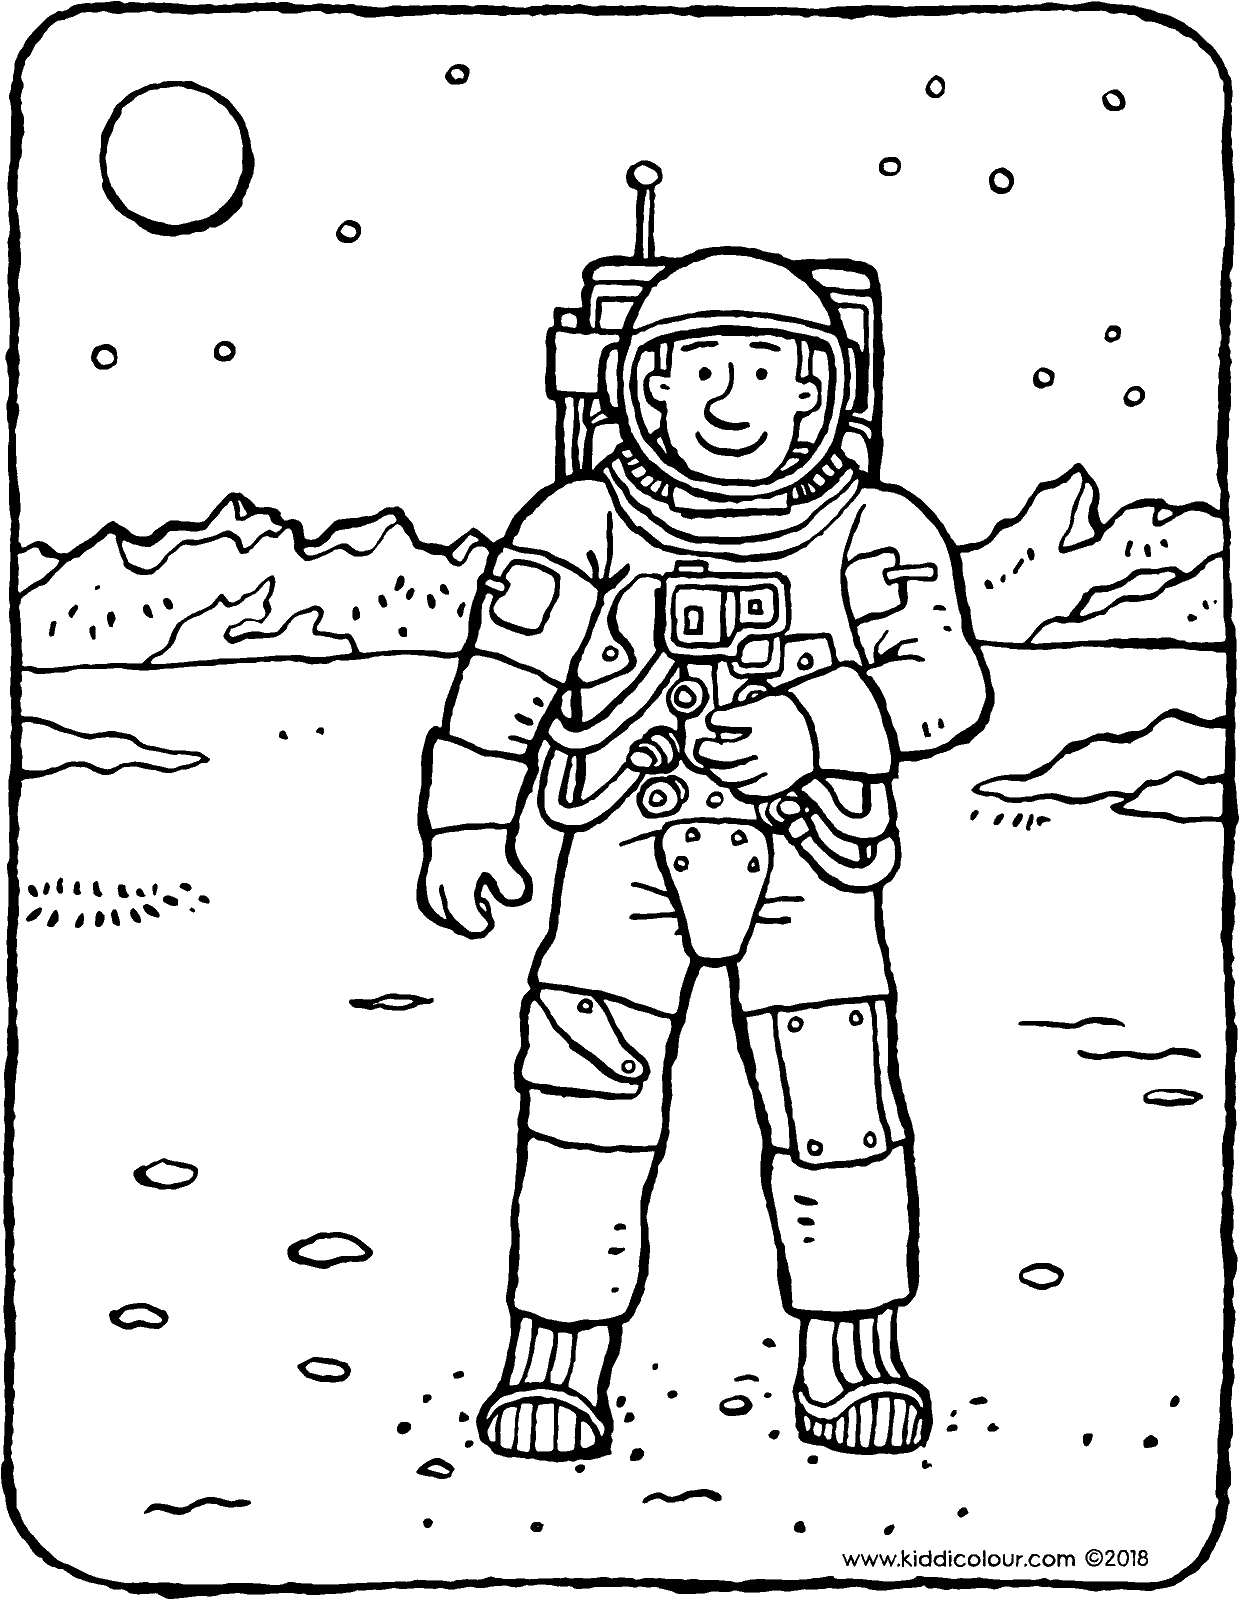 astronaut coloring for kids astronaut kiddicolour coloring for kids astronaut